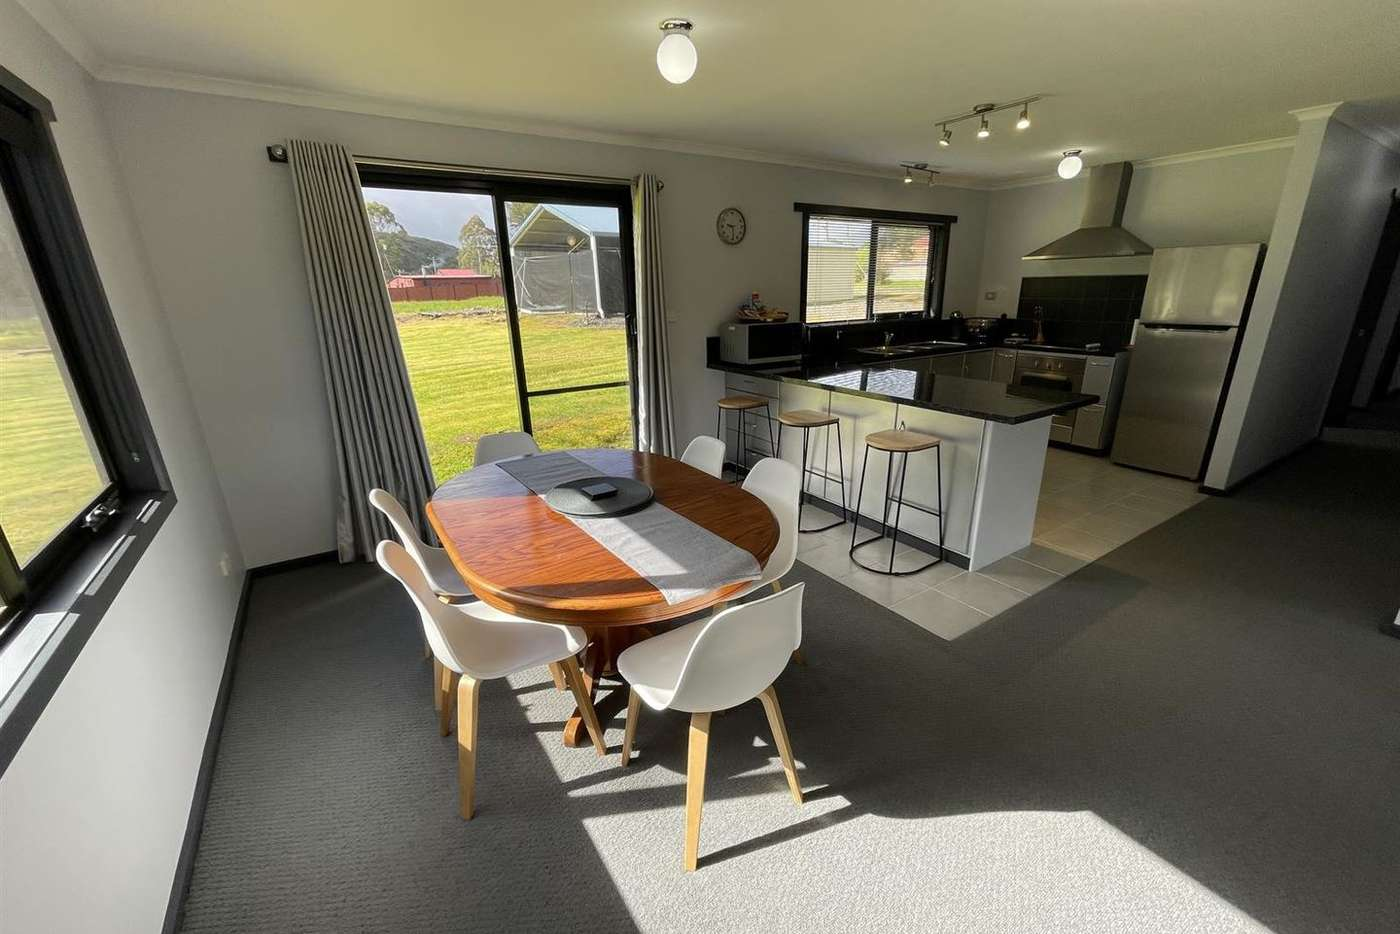 Sixth view of Homely house listing, 2 Irwell St, Zeehan TAS 7469